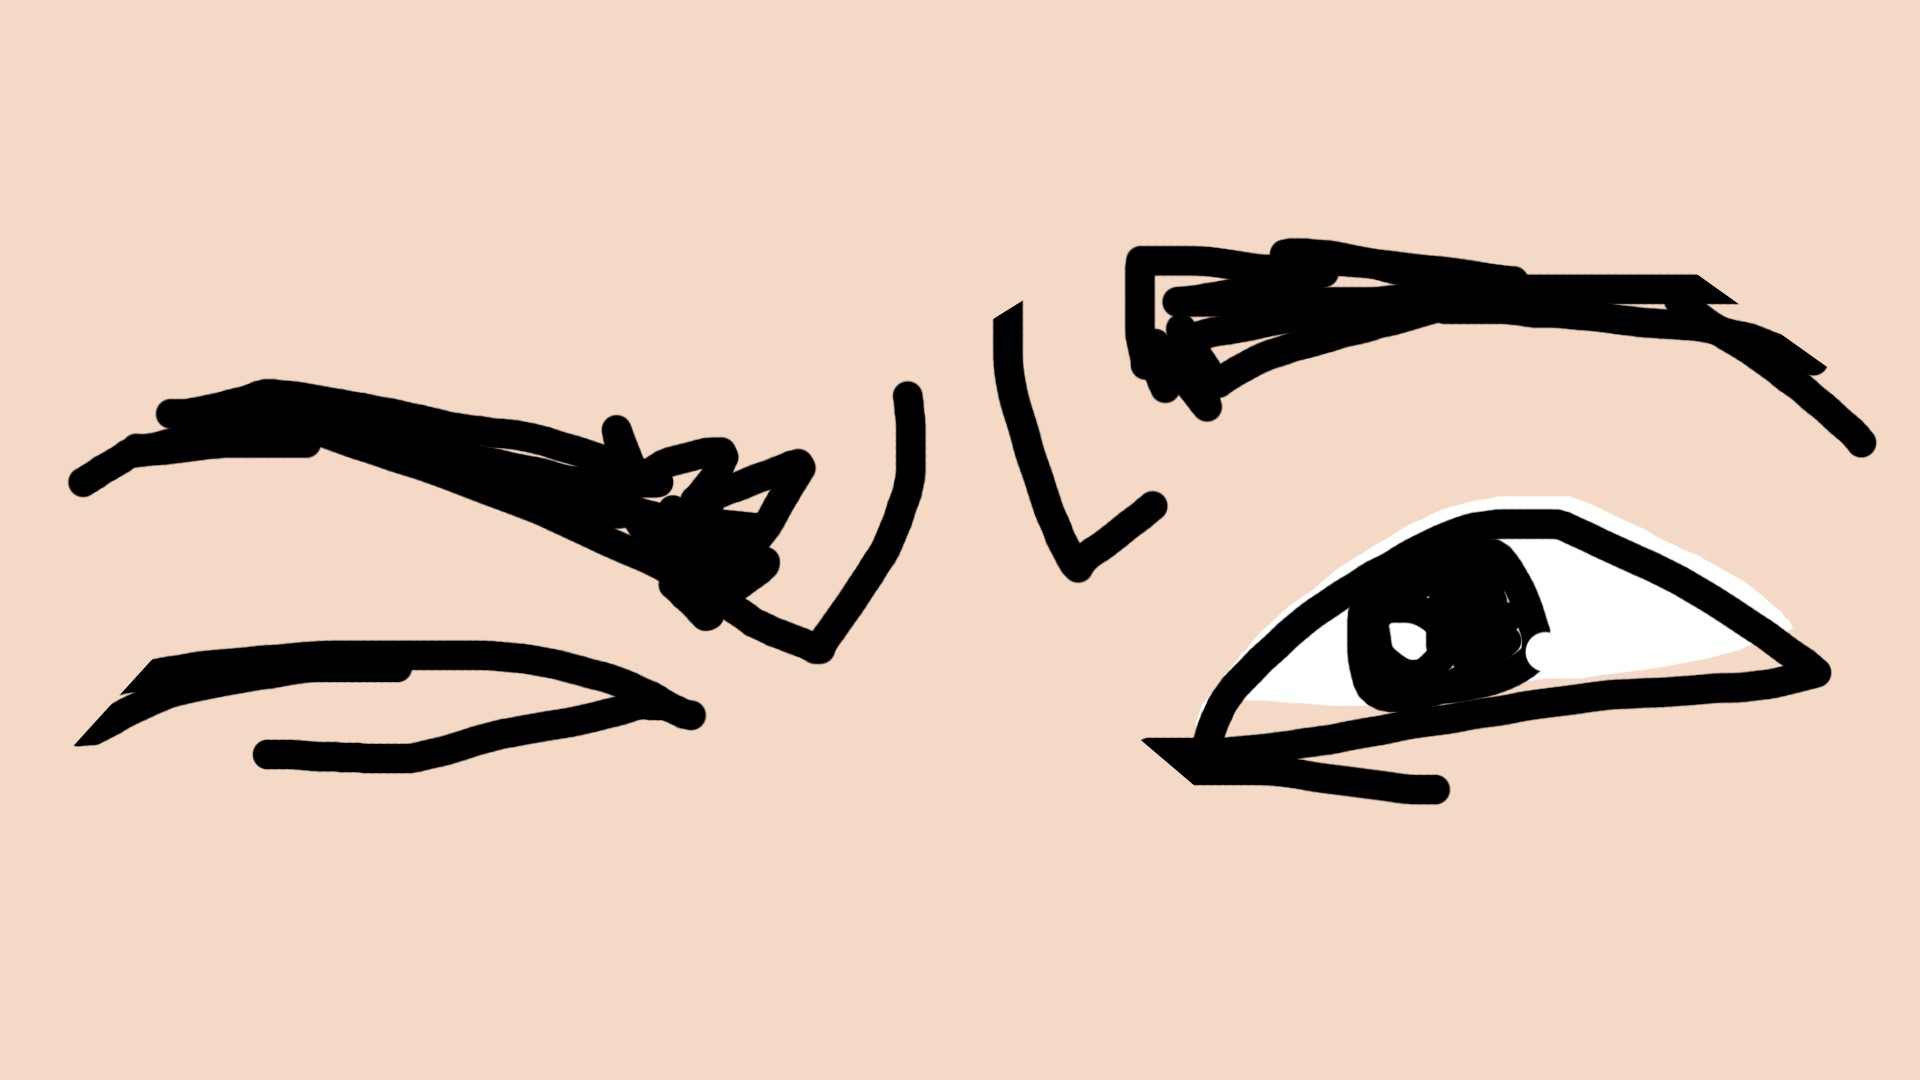 poorly drawn thinking face close up